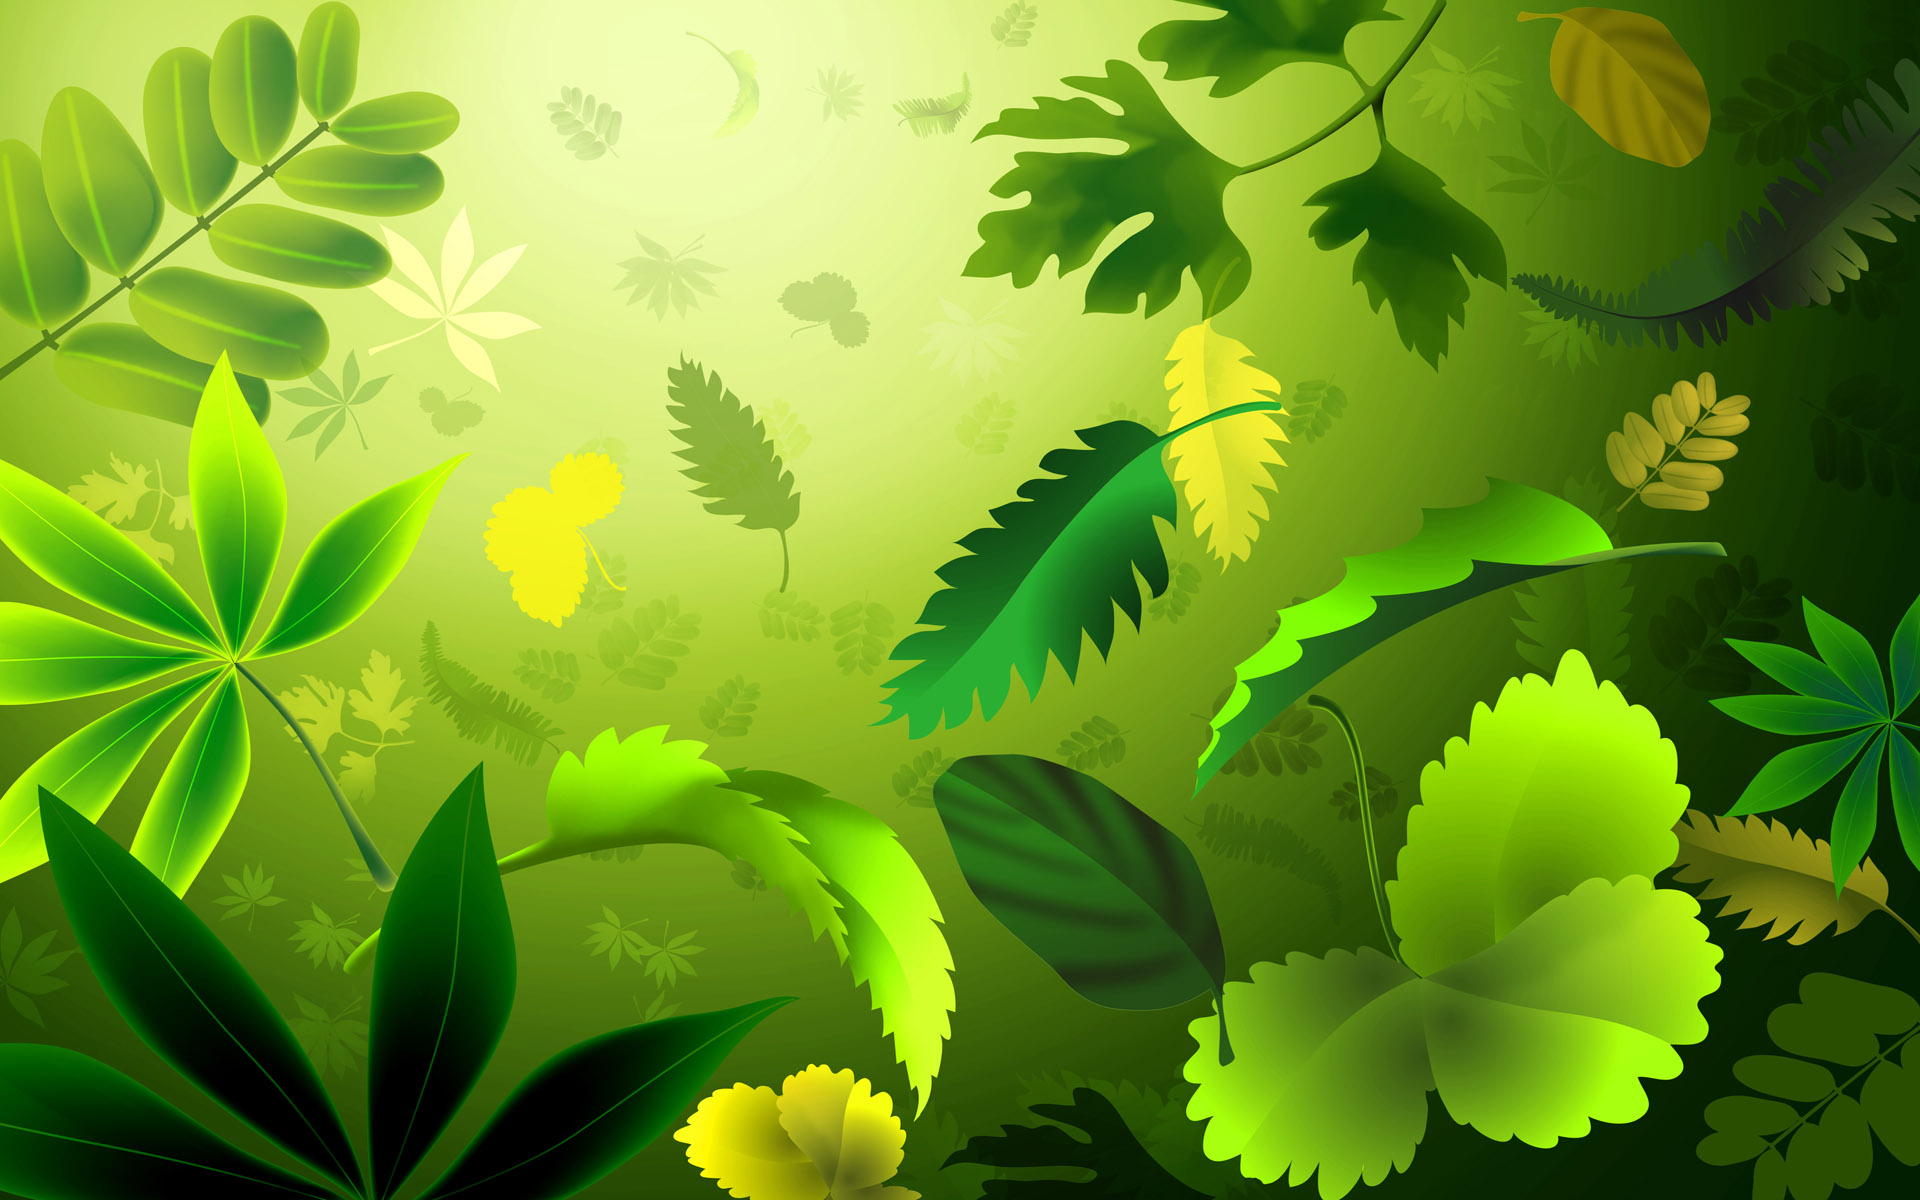 1920x1200 Green Leafs desktop PC and Mac wallpaper 1920x1200